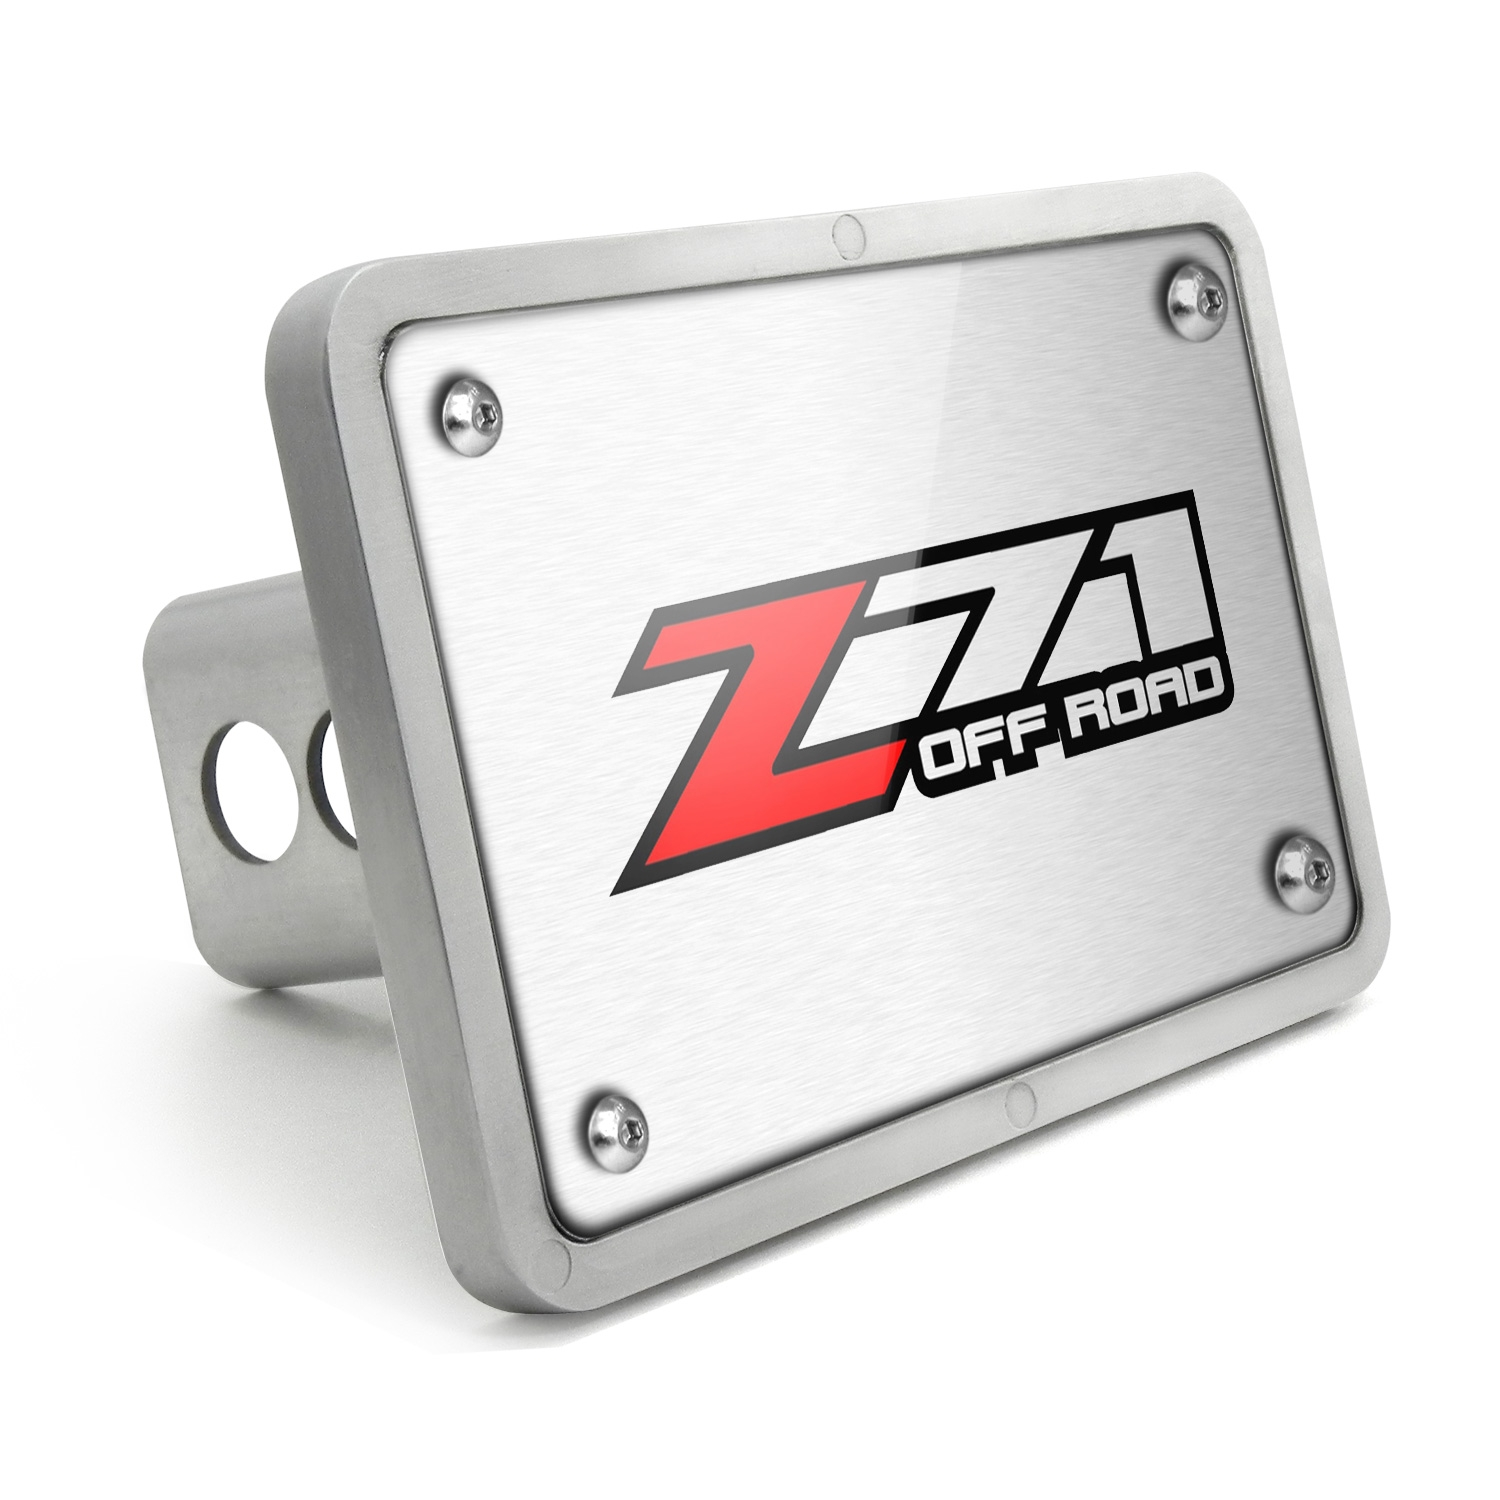 Chevrolet Z71 Off Road 2014 UV Graphic Brushed Silver Billet Aluminum 2 inch Tow Hitch Cover